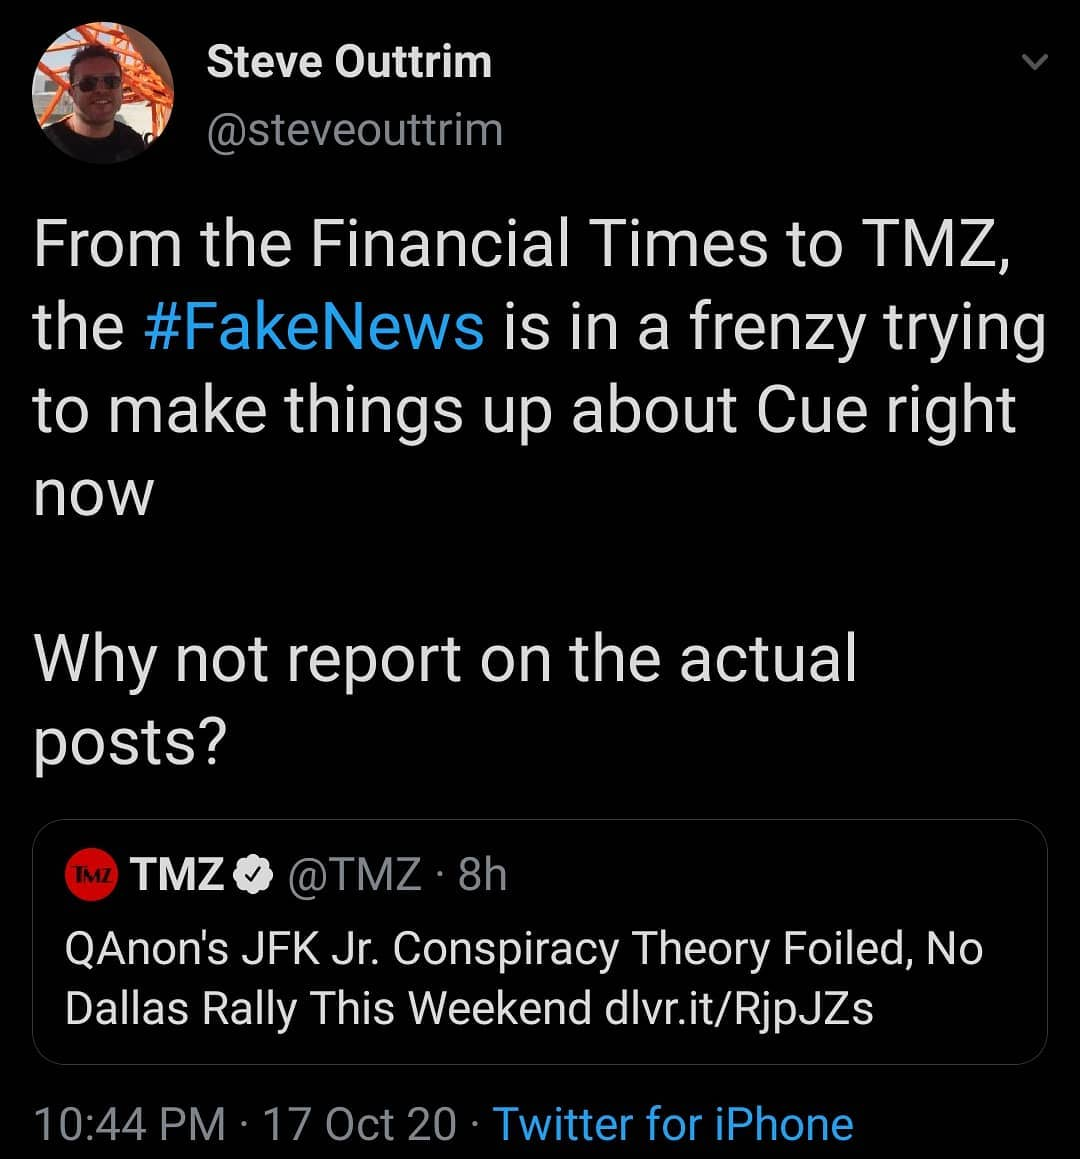 From the Financial Times to TMZ, the #FakeNews is in a frenzy trying to make things up about Cue right now.